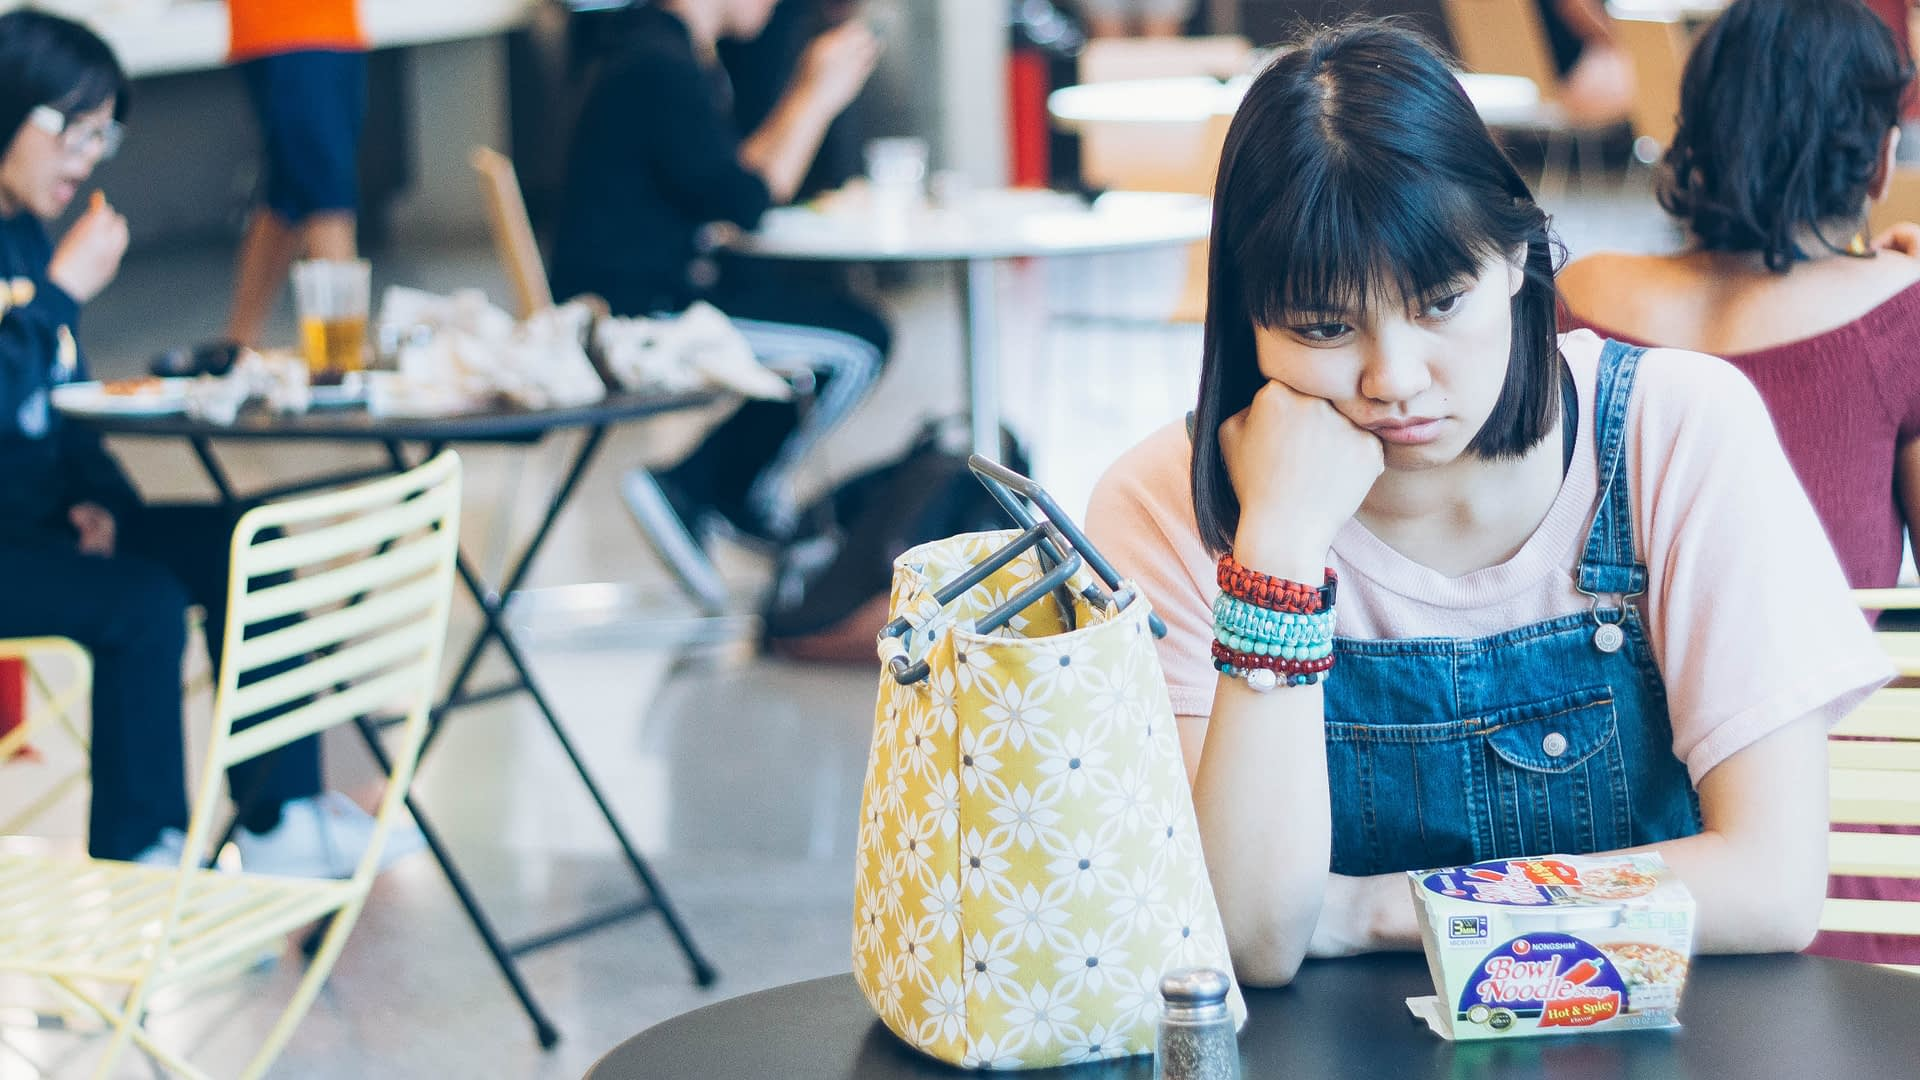 Woman with depressions sits alone at a table pouting